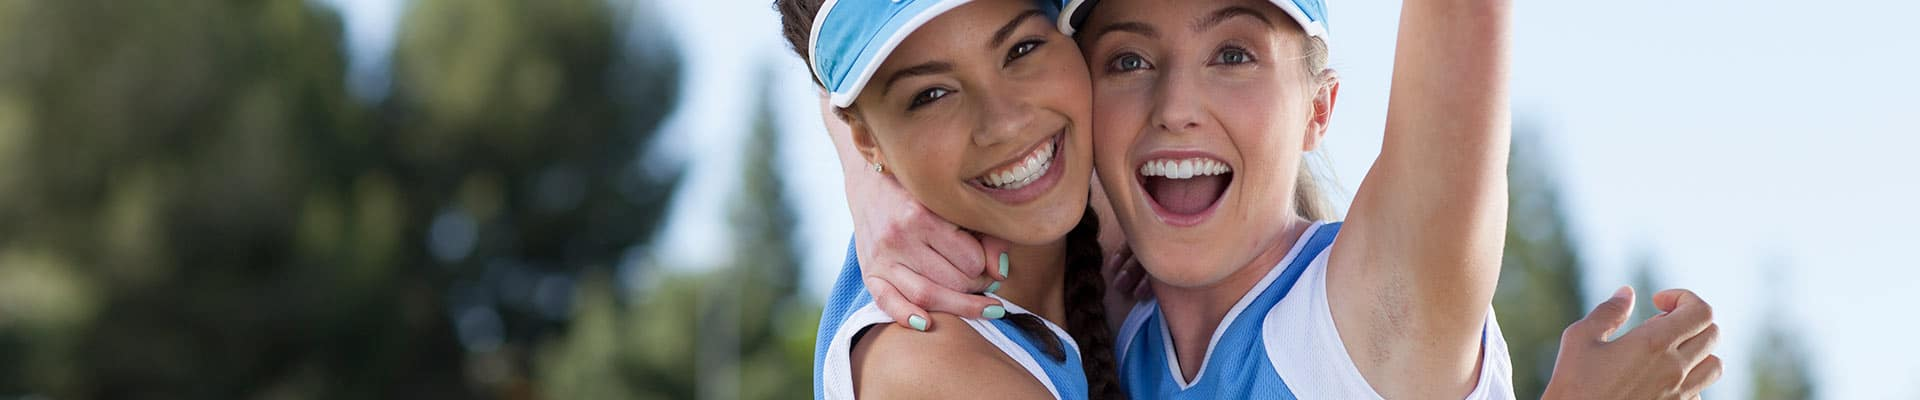 Invisalign Teen Feature Image Durham Orthodontic Centre in Whitby, ON